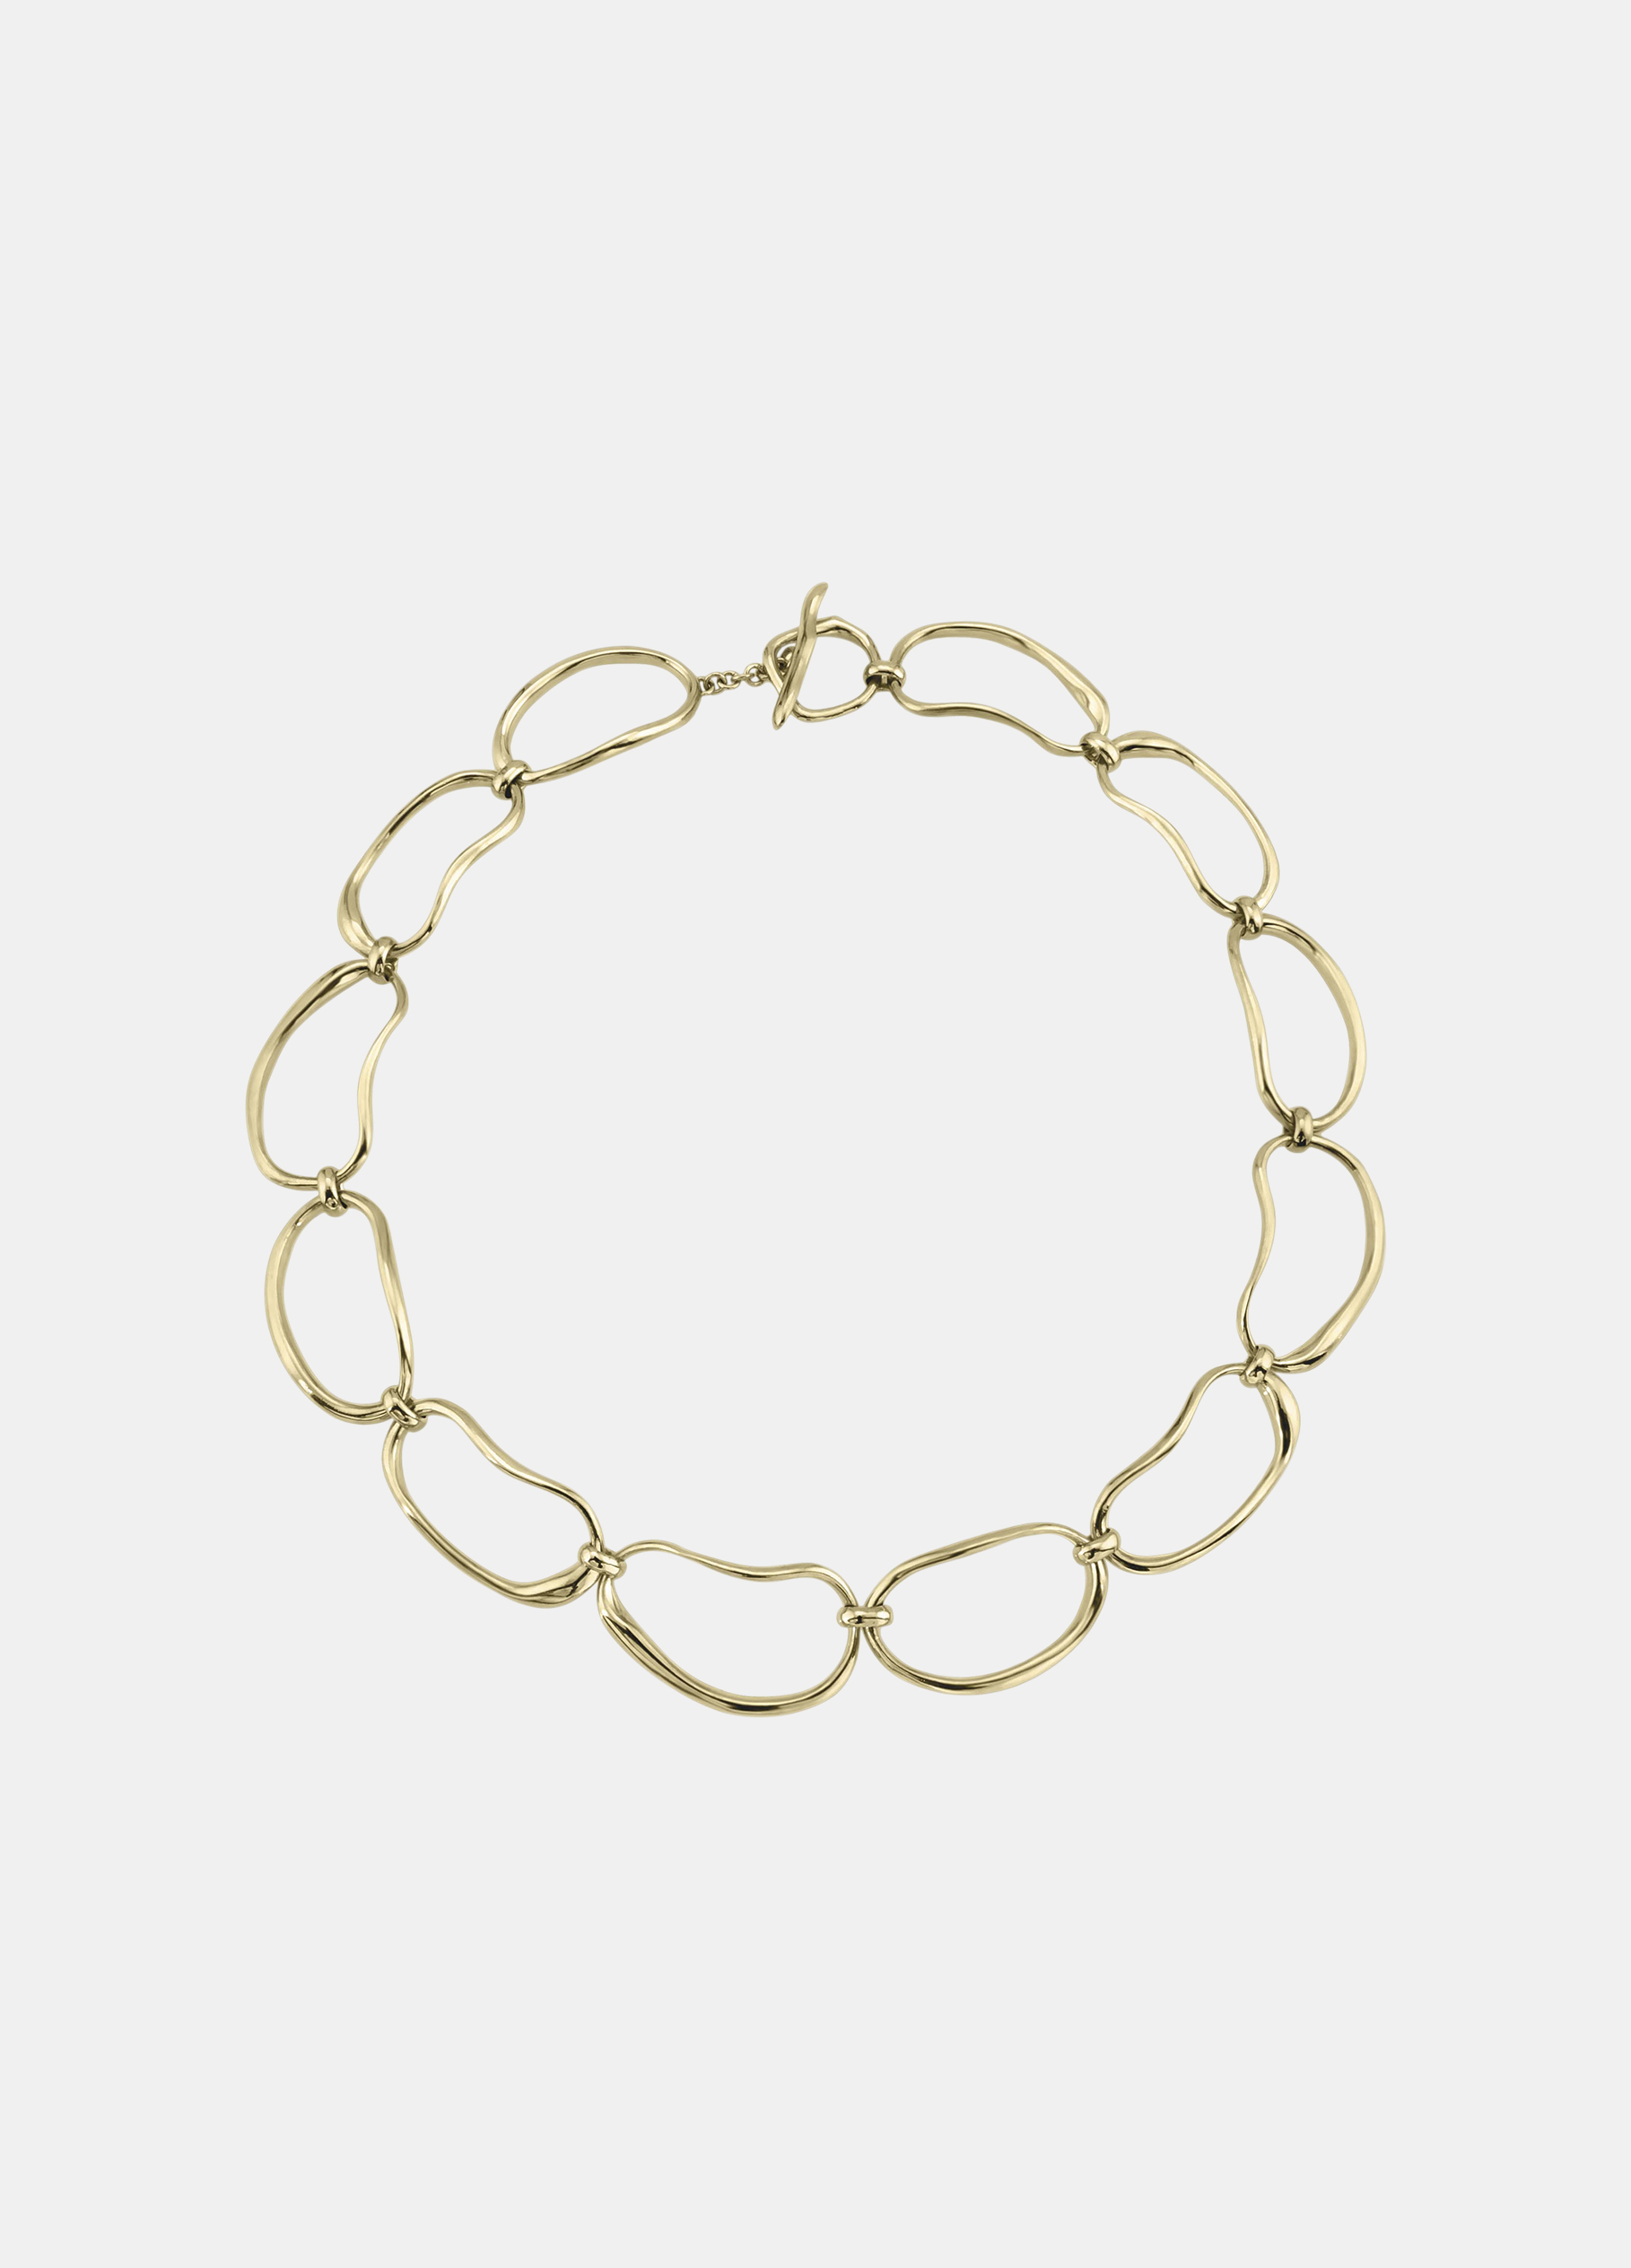 Modern Weaving / Hand Formed Oval Link Chain Necklace